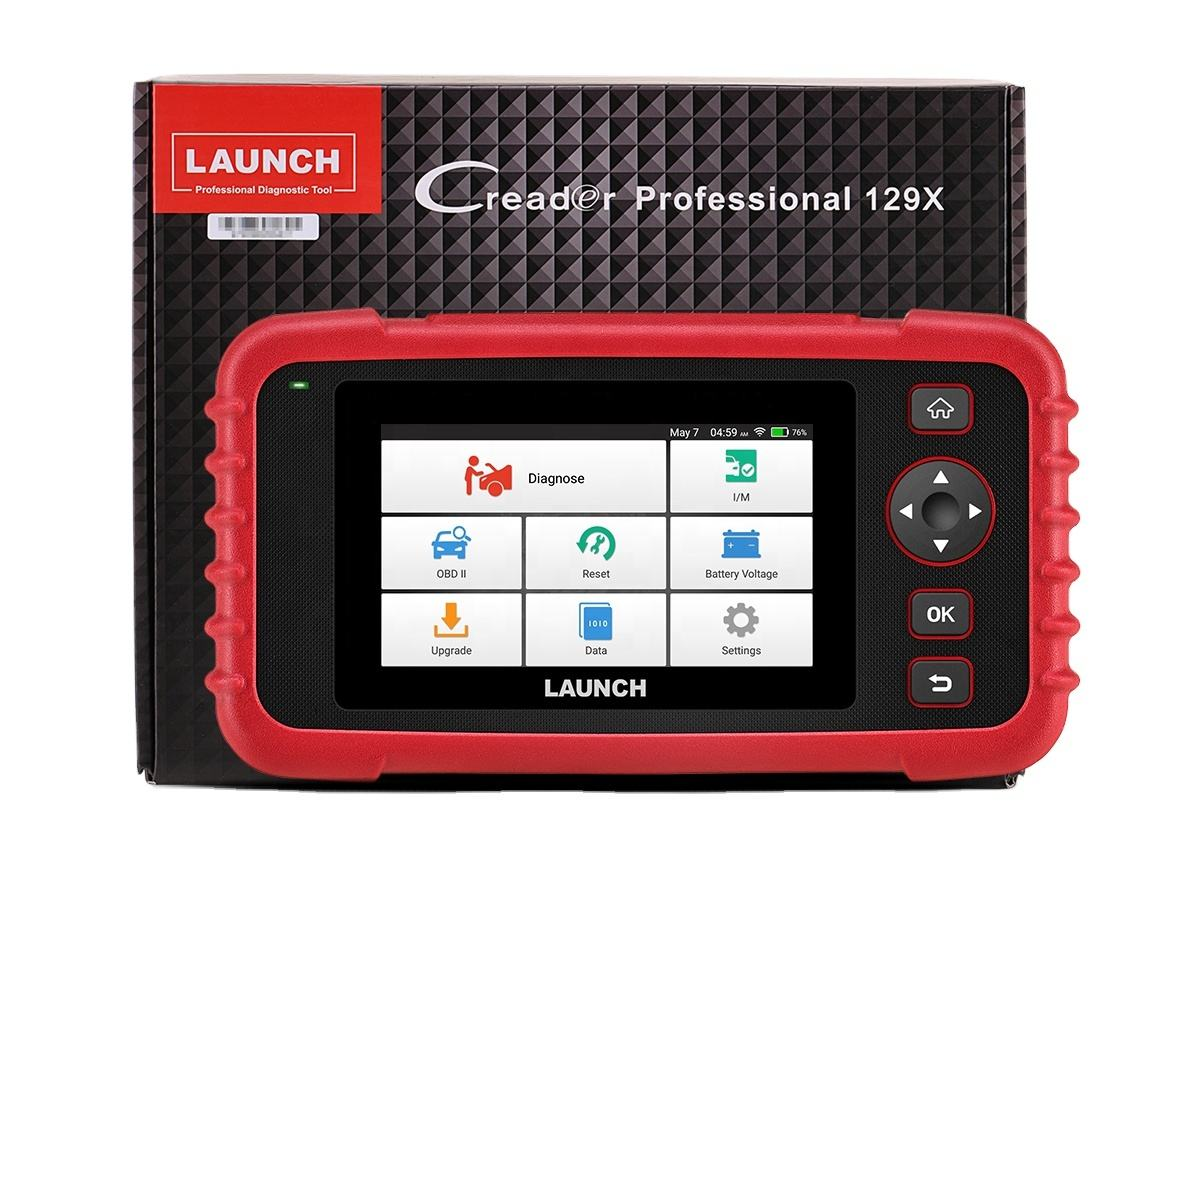 2020 Launch crp129x 4 system Diagnostic tool New Version of crp129 and crp129e Scanner